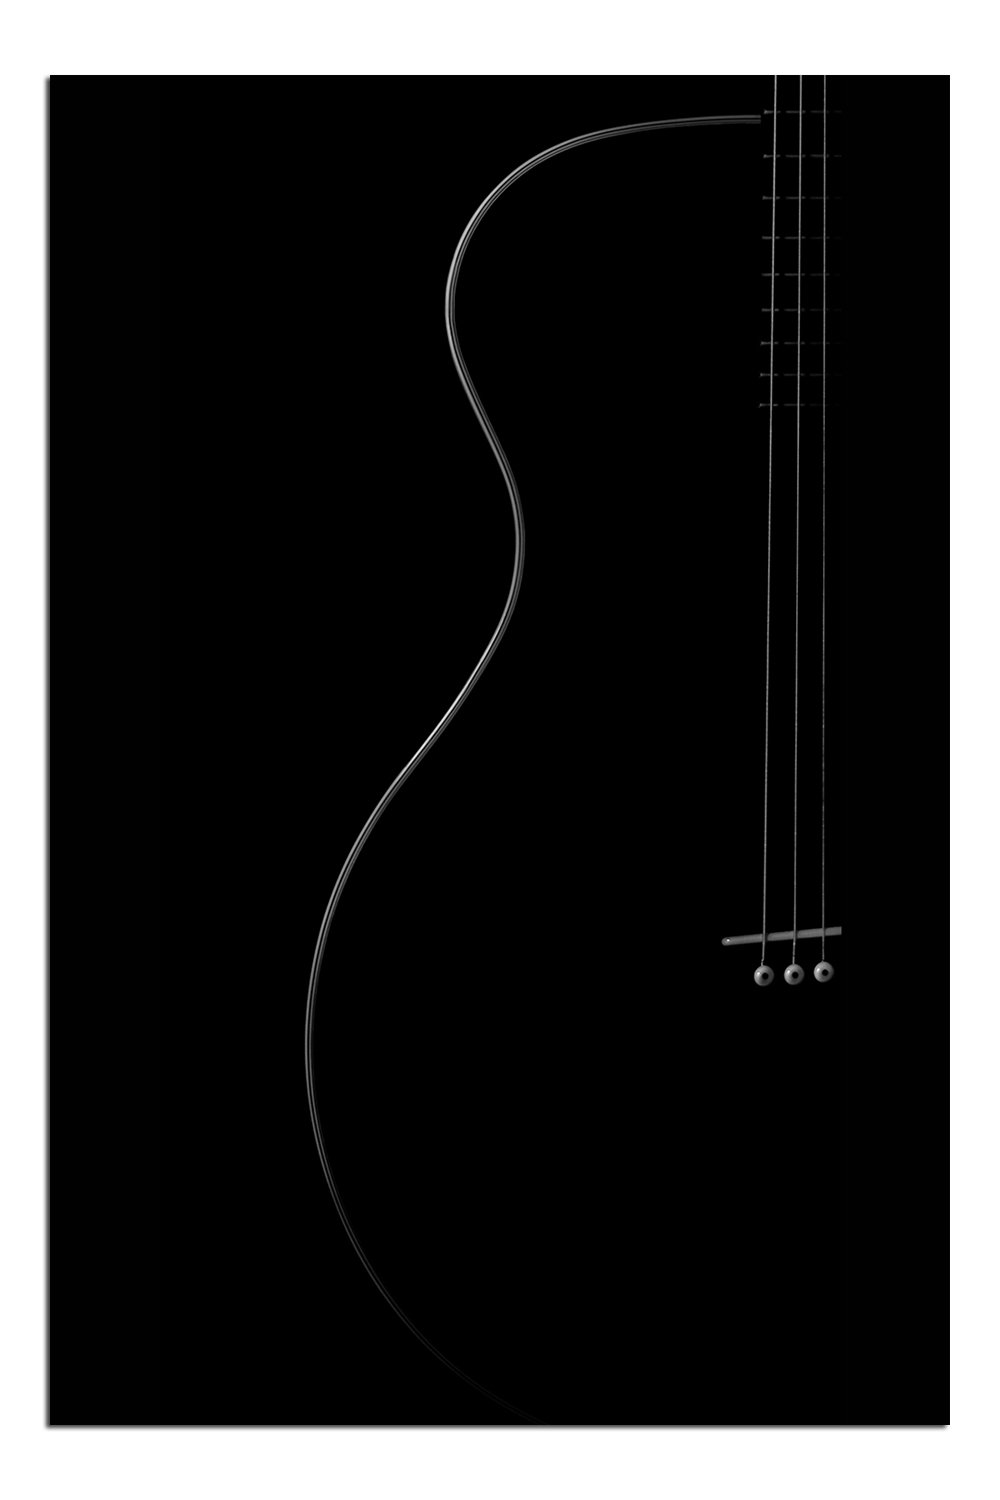 JP London Solvent Free Print PAPM1X483562 Curves Country Rock Acoustic Music Guitar Outline Ready to Frame Poster Wall Art 36 h by 24 w